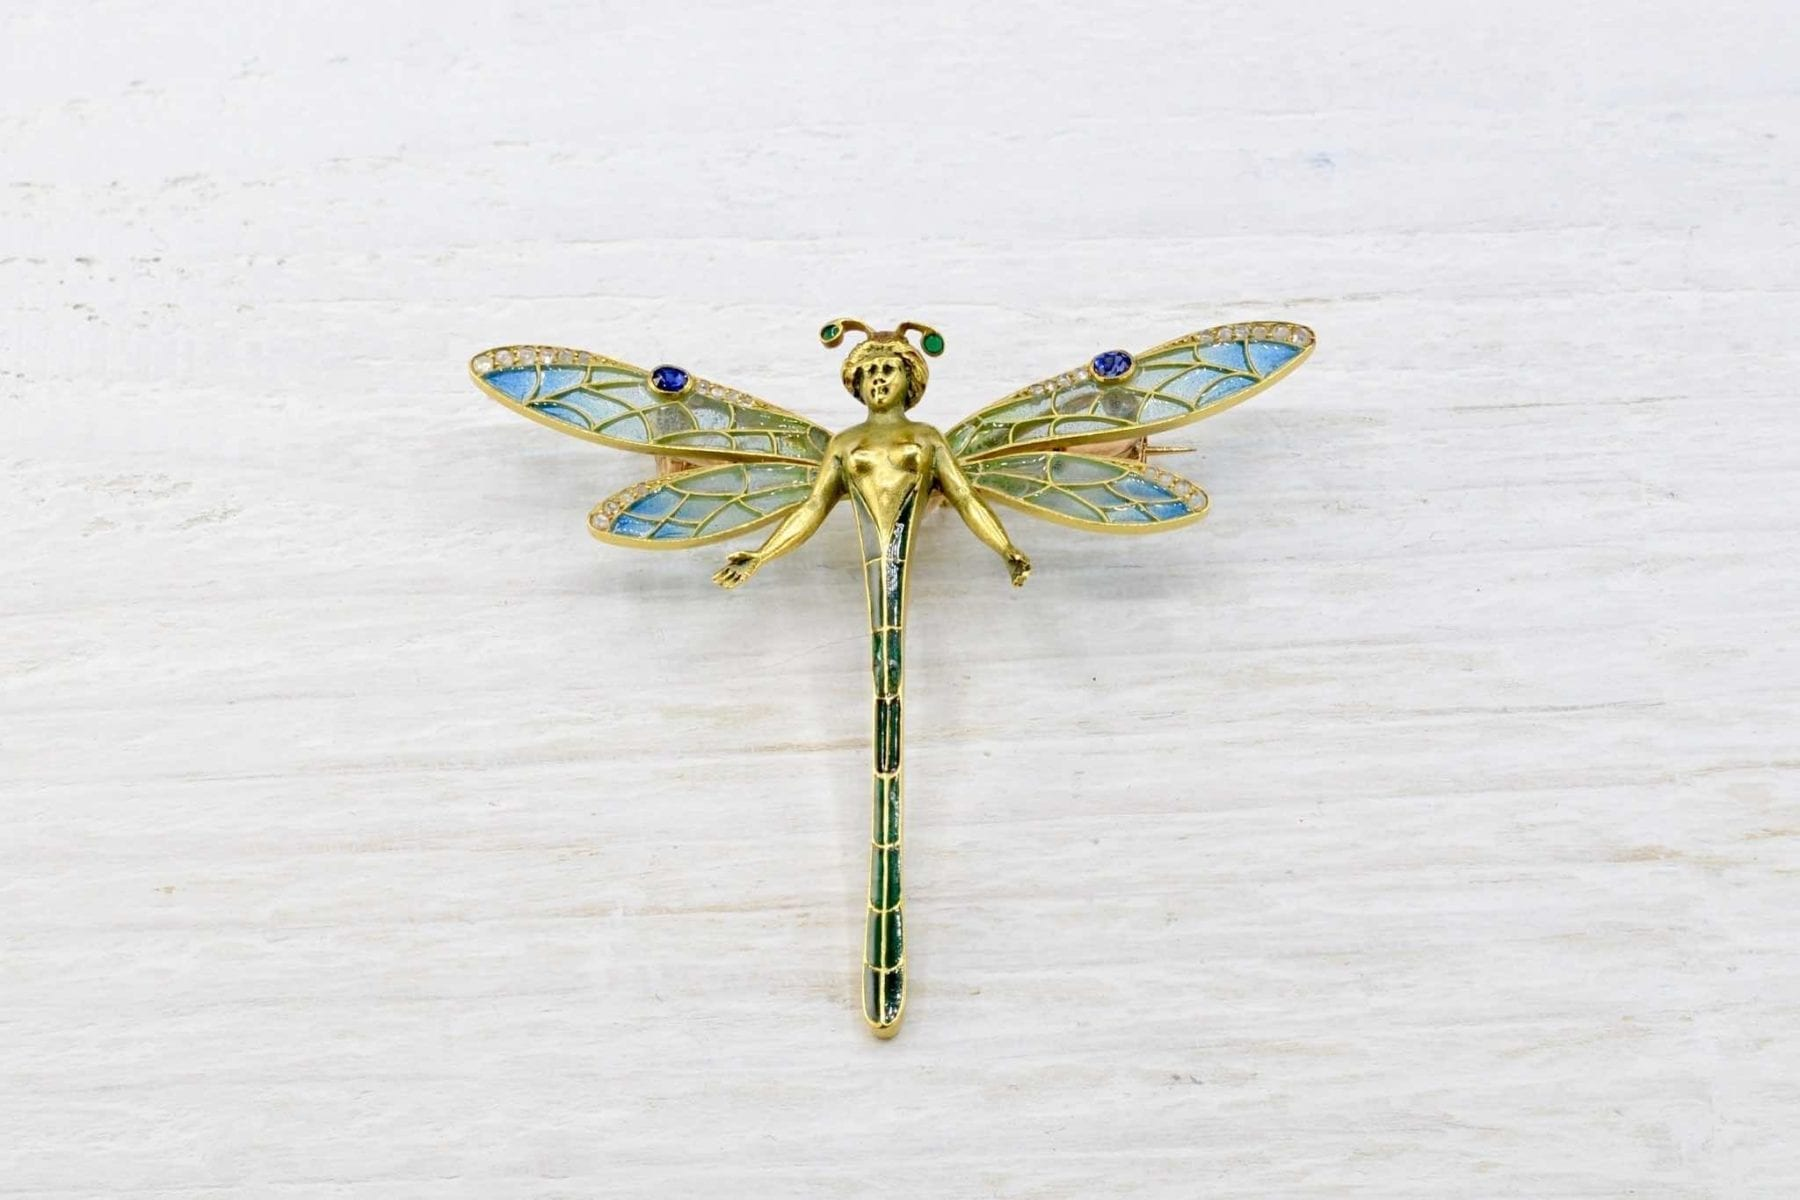 18k gold brooch